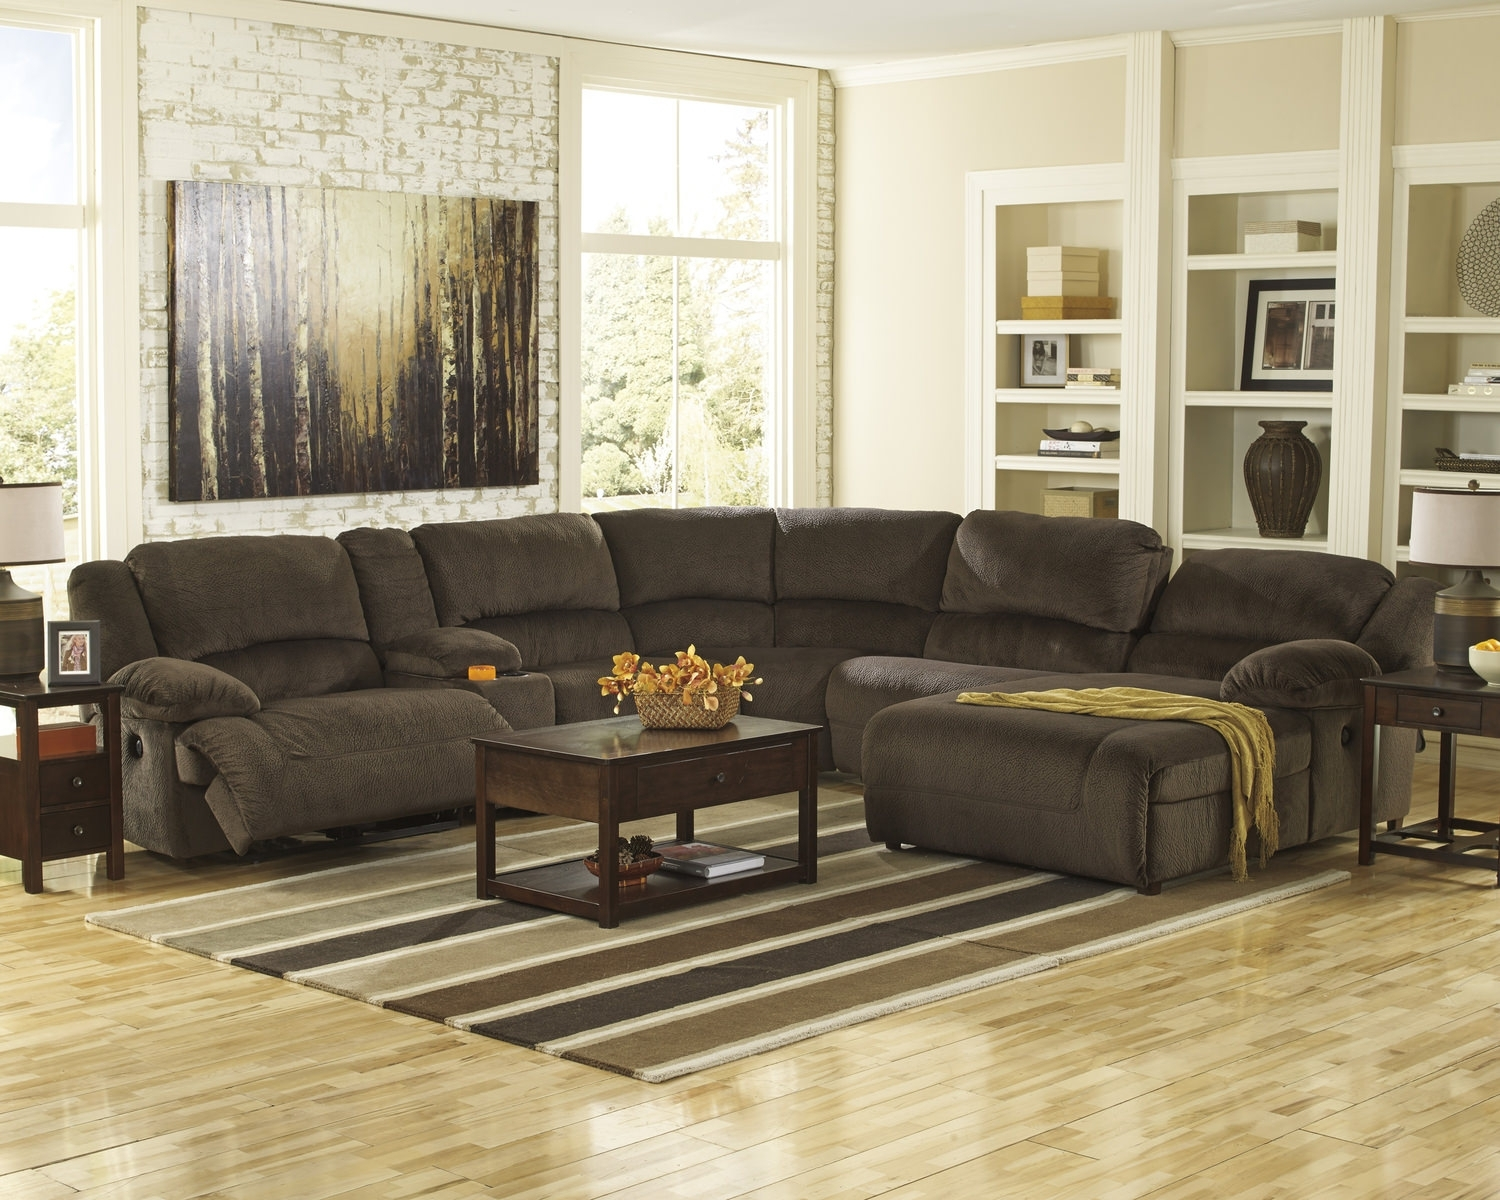 Hero 6 Piece Reclining Sectional | Dock86 In Dock 86 Sectional Sofas (View 2 of 10)